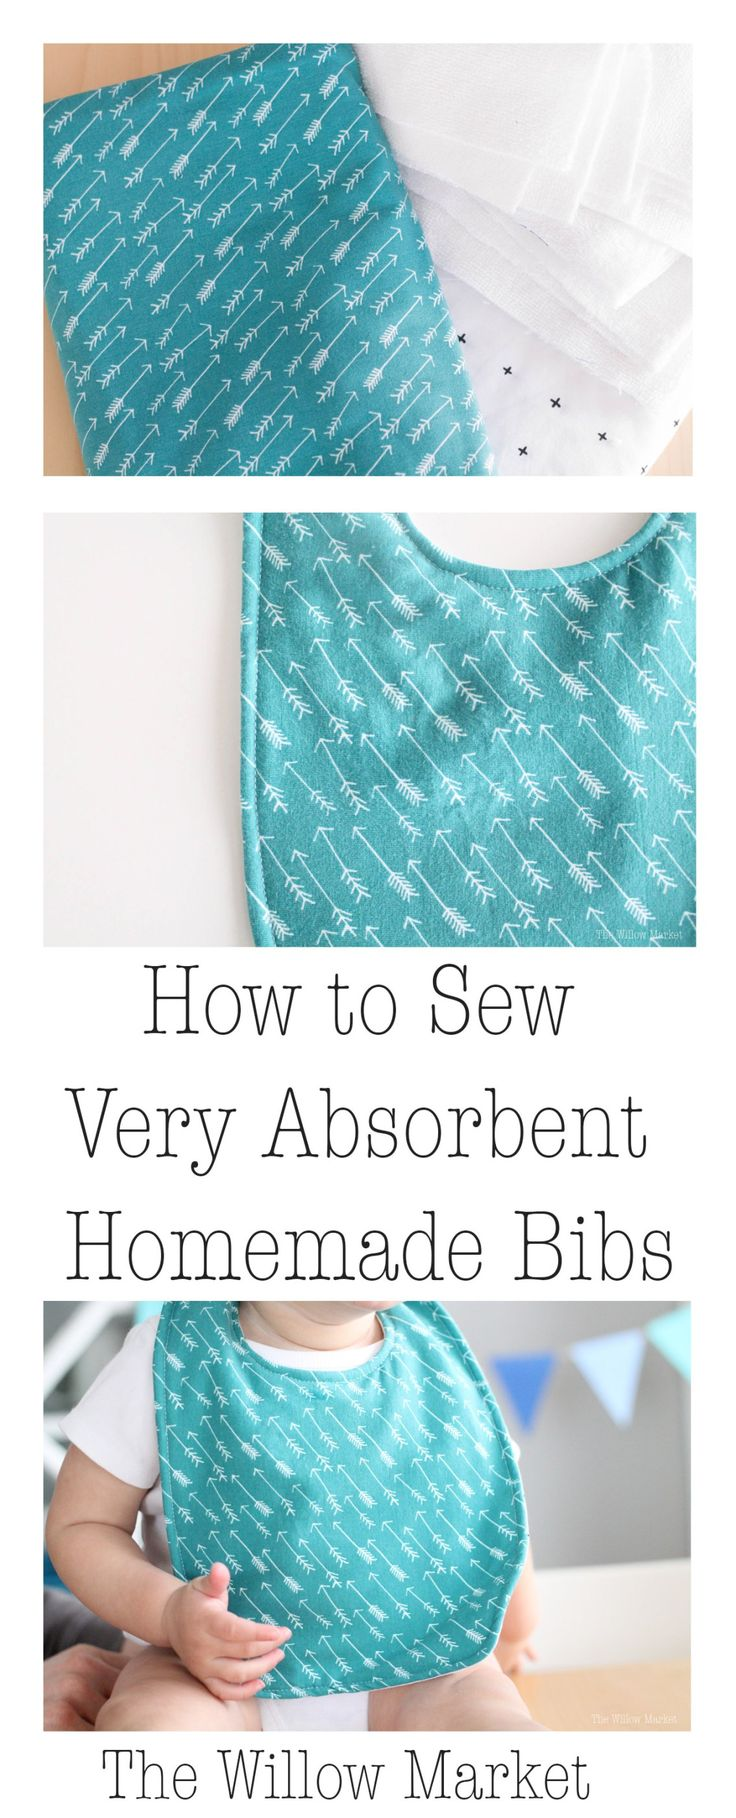 How to sew very absorbent homemade baby bibs.